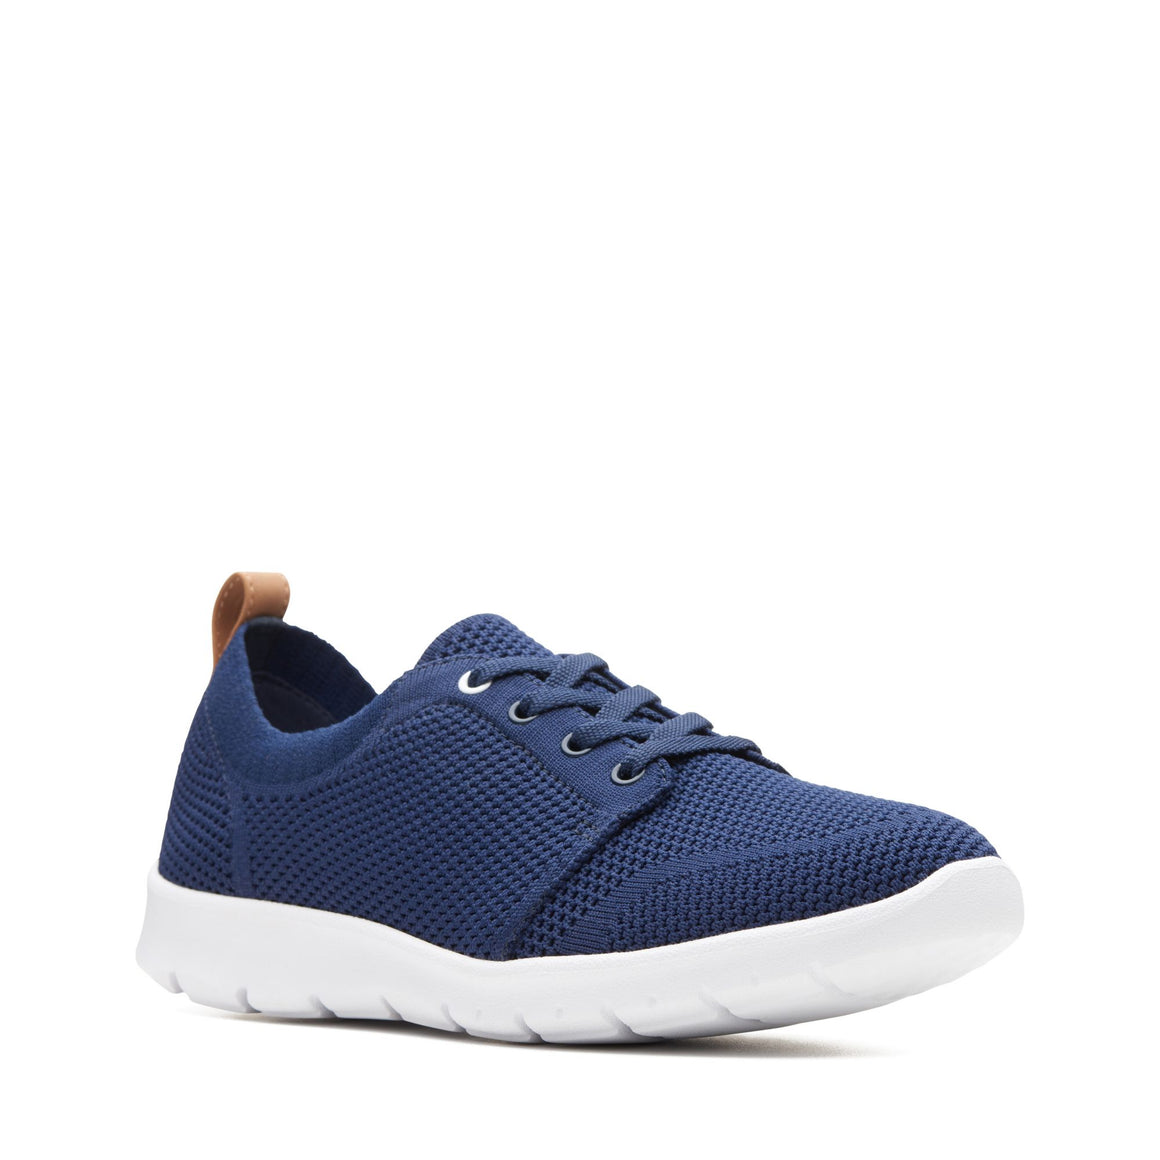 Clarks Women's Step Allenasun - Navy - ShoeShackOnline